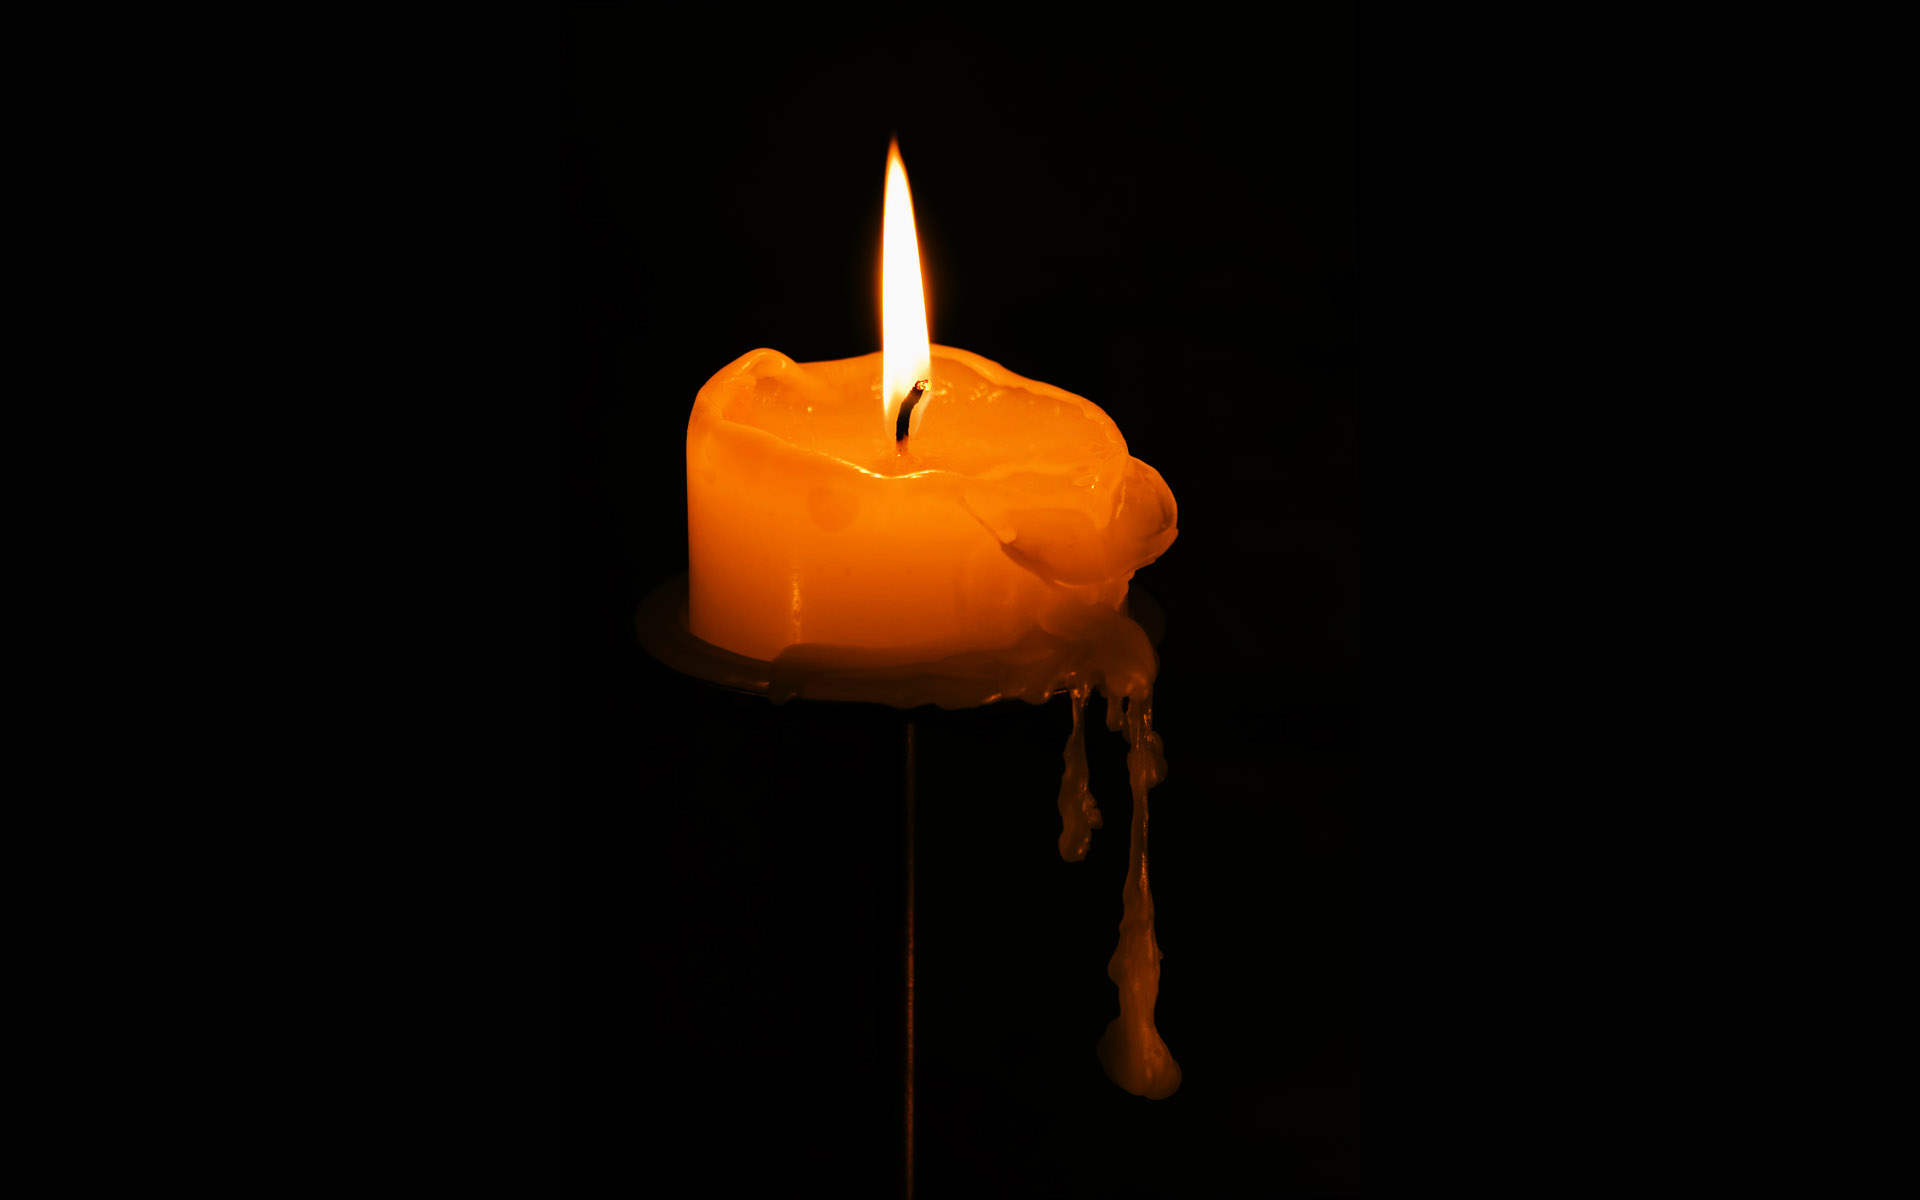 Candle wallpaper 7292